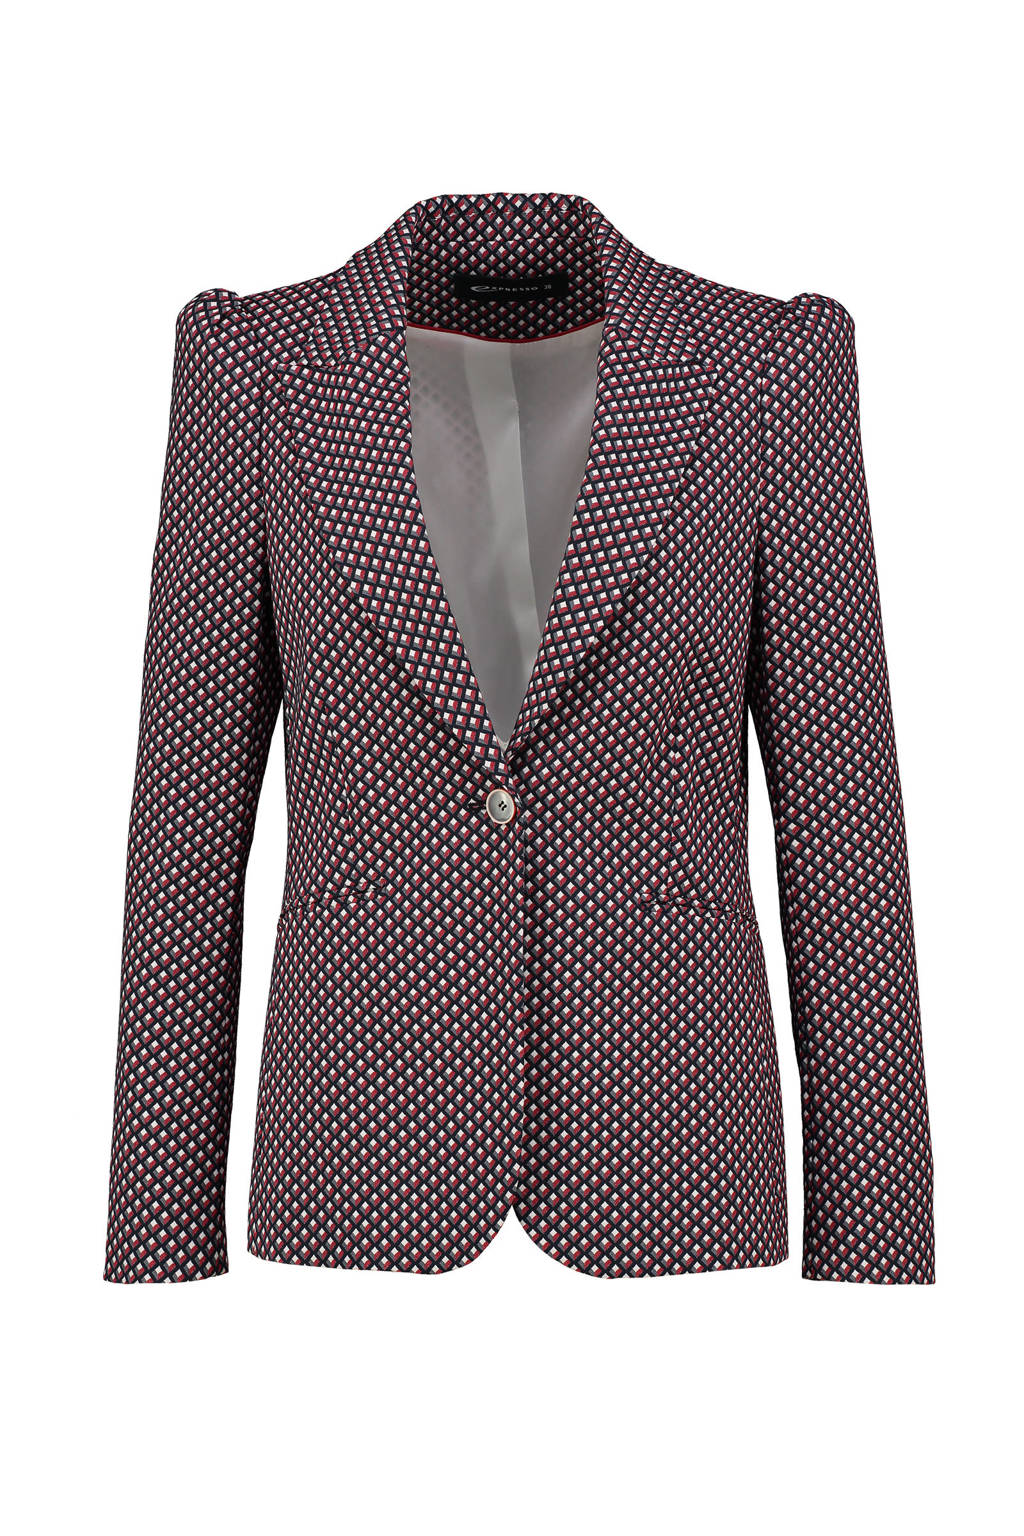 Expresso blazer Carry met all over print rood/donkerblauw/wit, Rood/donkerblauw/wit